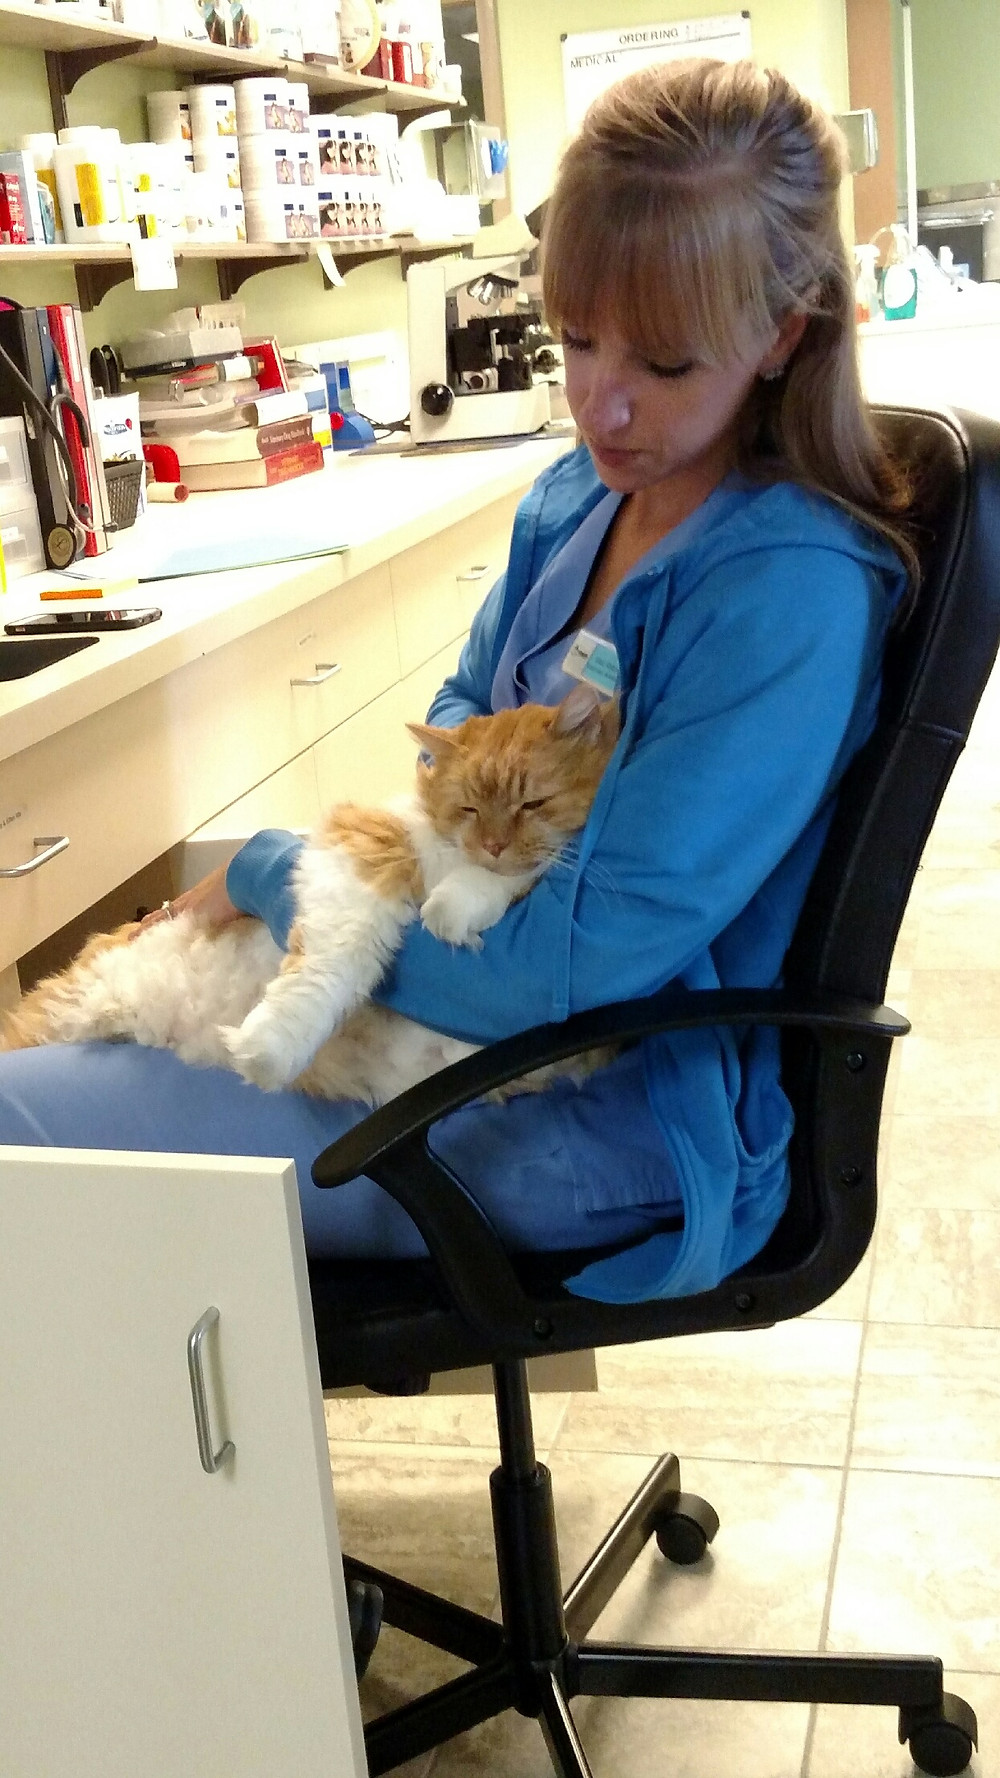 Veterinary Assistant holding orange/white cat in chair